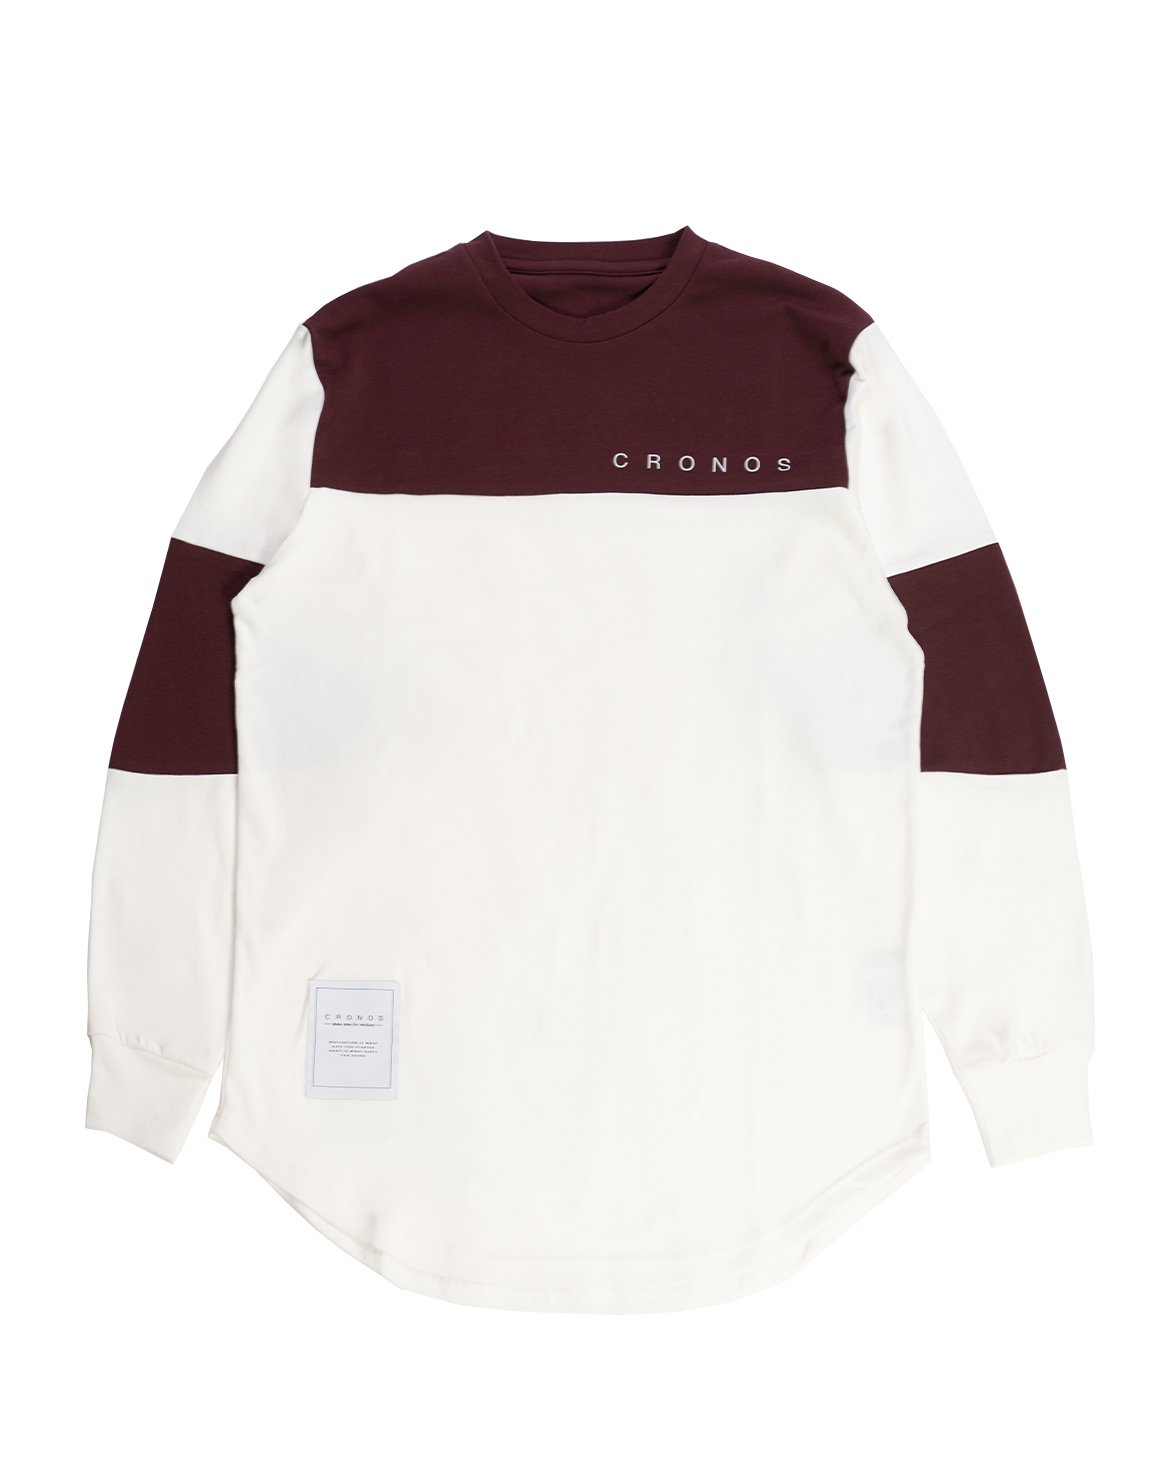 <img class='new_mark_img1' src='https://img.shop-pro.jp/img/new/icons55.gif' style='border:none;display:inline;margin:0px;padding:0px;width:auto;' />CRONOS NEW BICOLOR  LONG SLEEVE【WHITE×BORDEAUX】